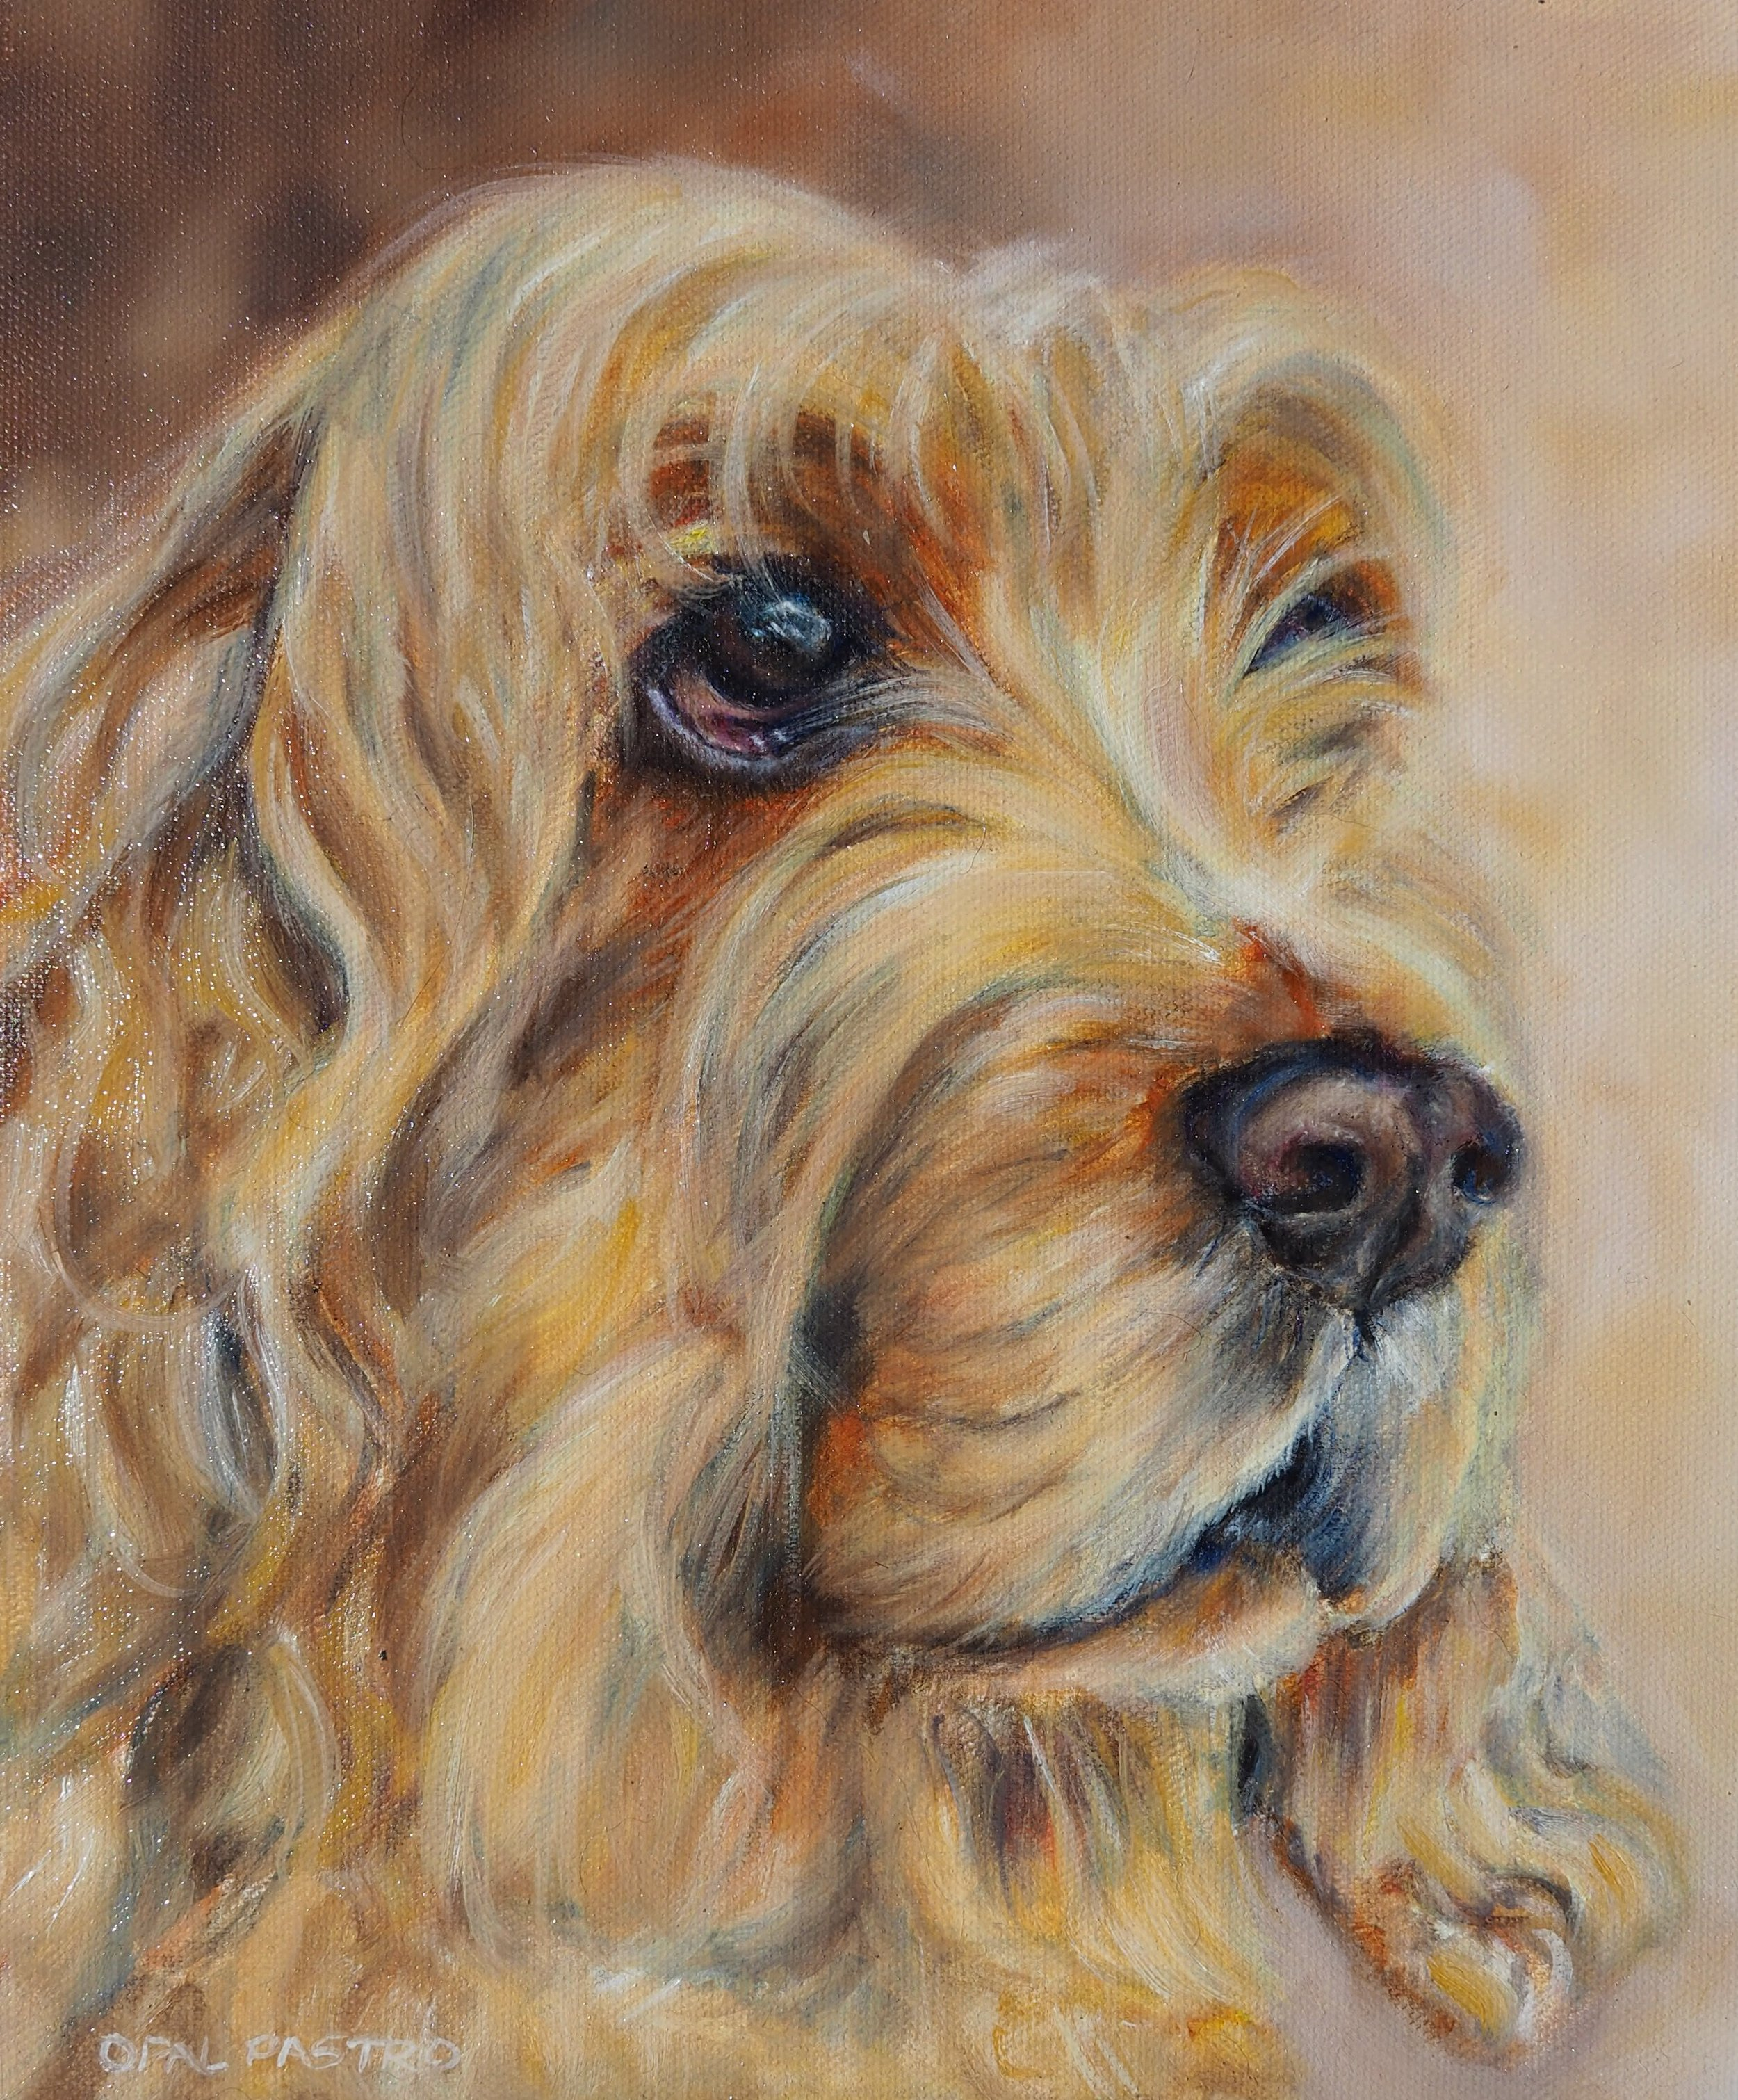 DOG PAINTING OF LUCY THE COCKER SPANIEL BY OPAL PASTRO ART